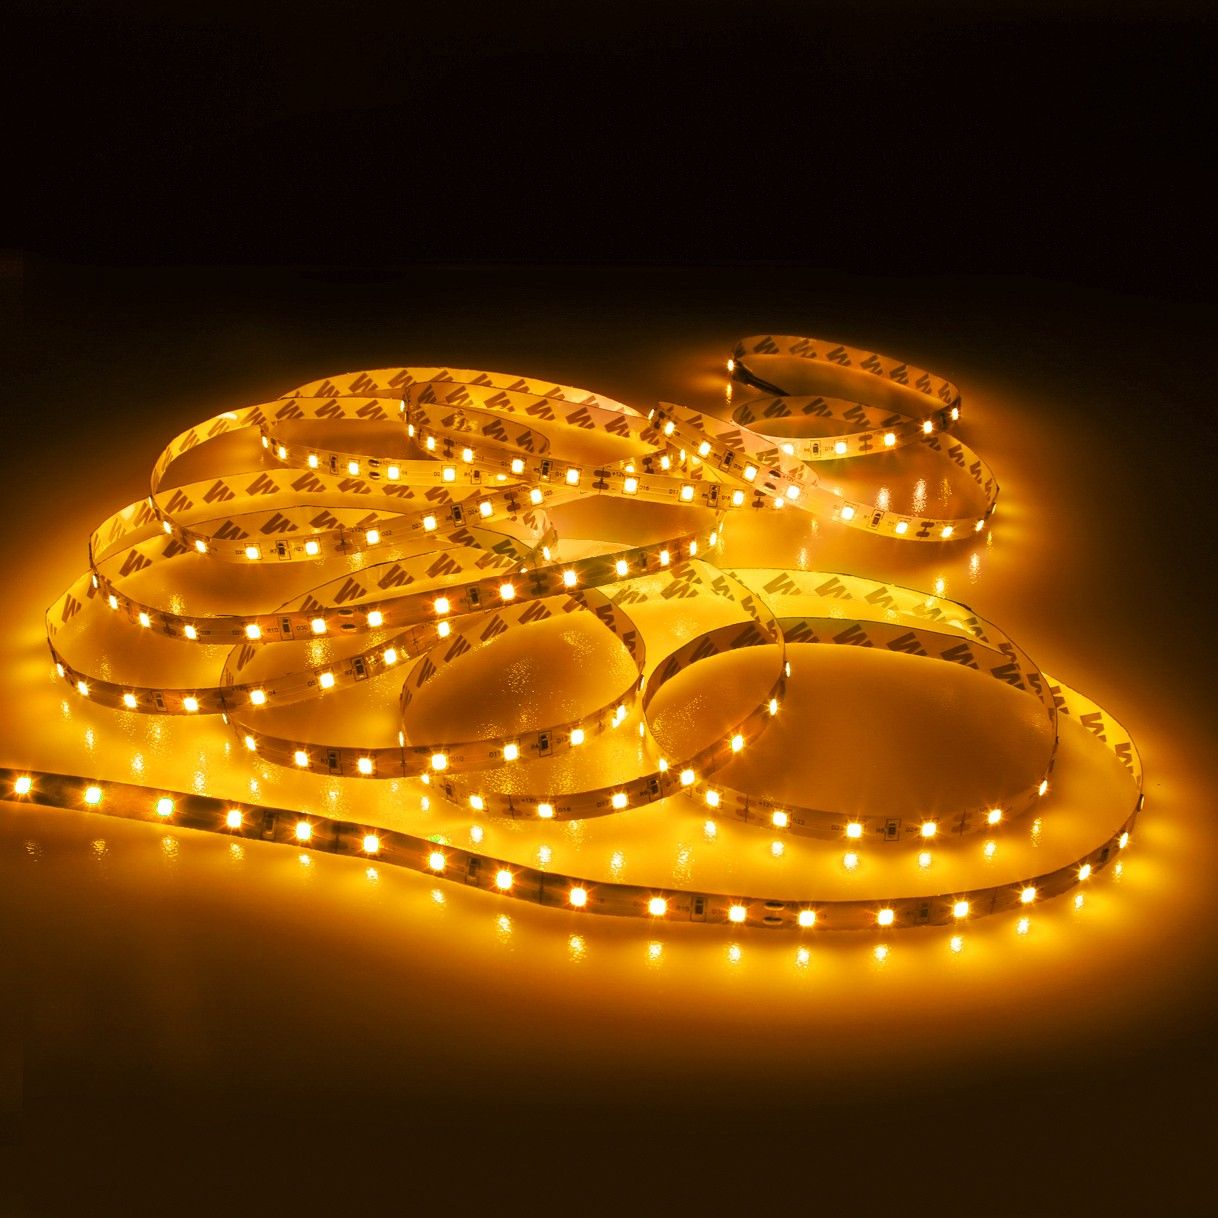 16 4ft Warm White Led Strip Light Non Waterproof Led Tape Light Led Strip Lighting 12v Led Strip Lights Led Tape Lighting